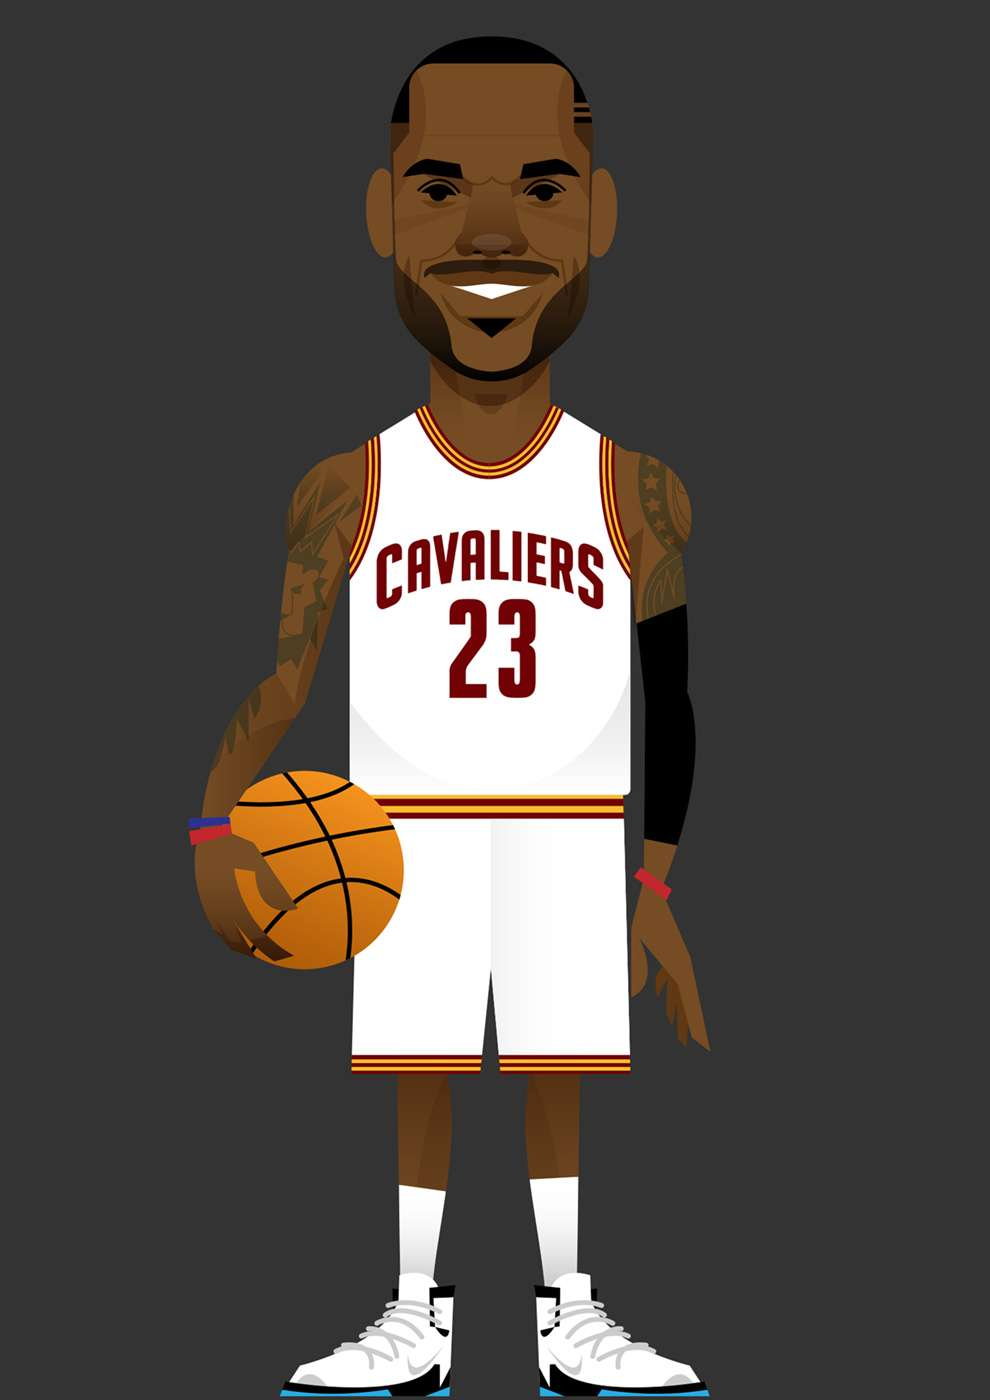 Stanley Chow, Bold and graphic digital portrait illustration of a basketball player